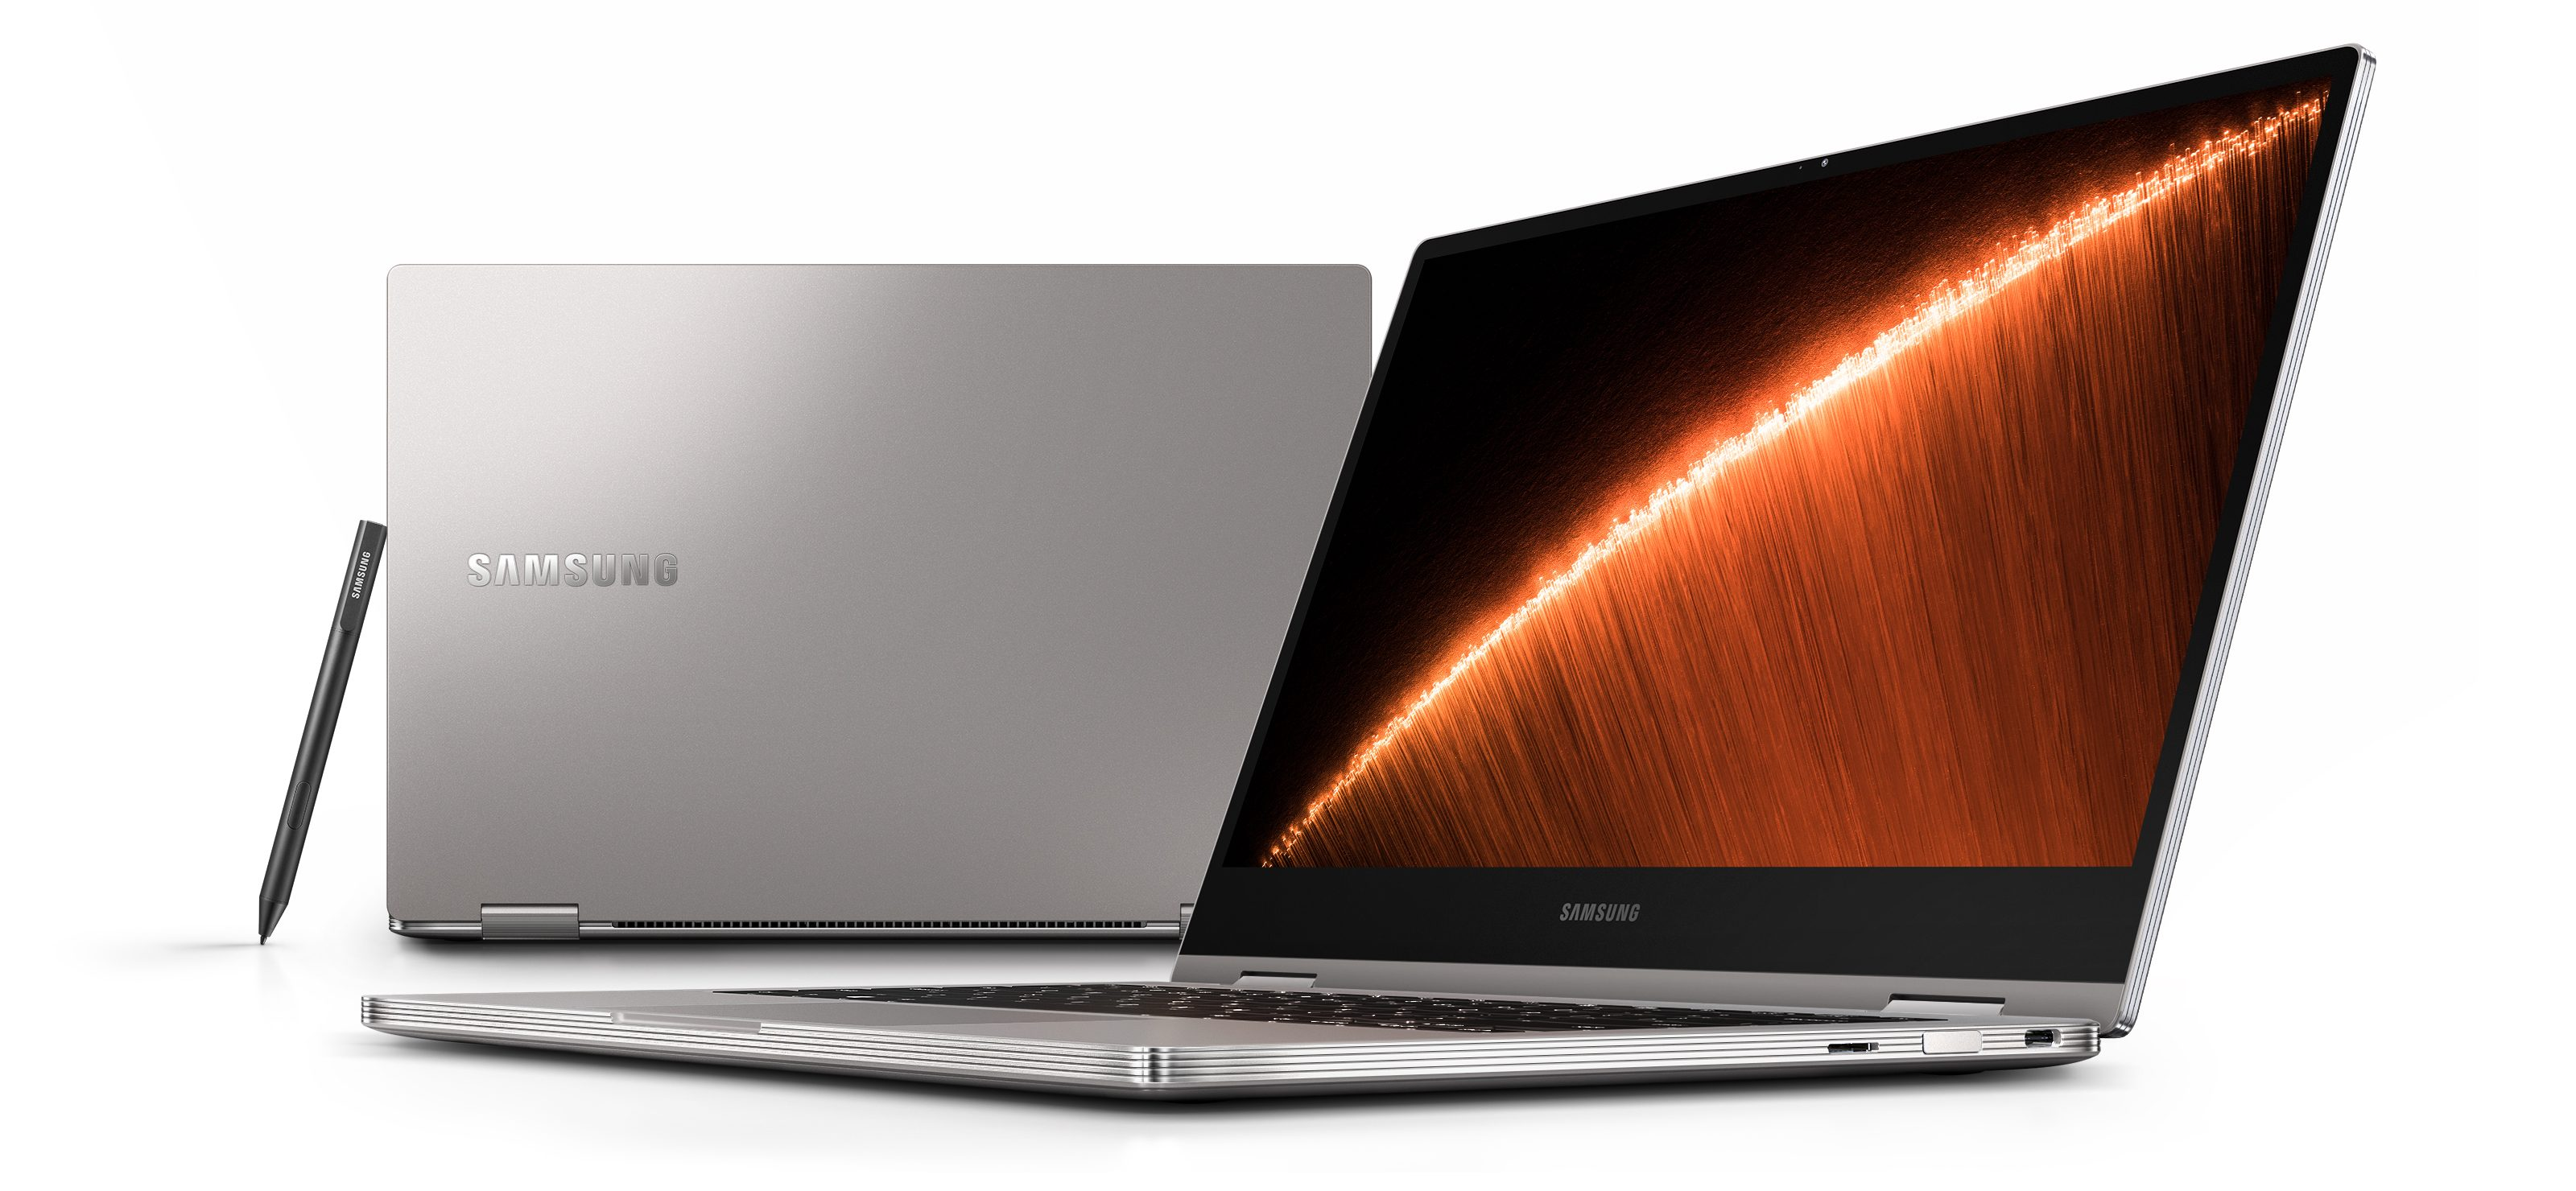 Samsung releases a Chromebook-like Windows 10 Home laptop | TechCrunch